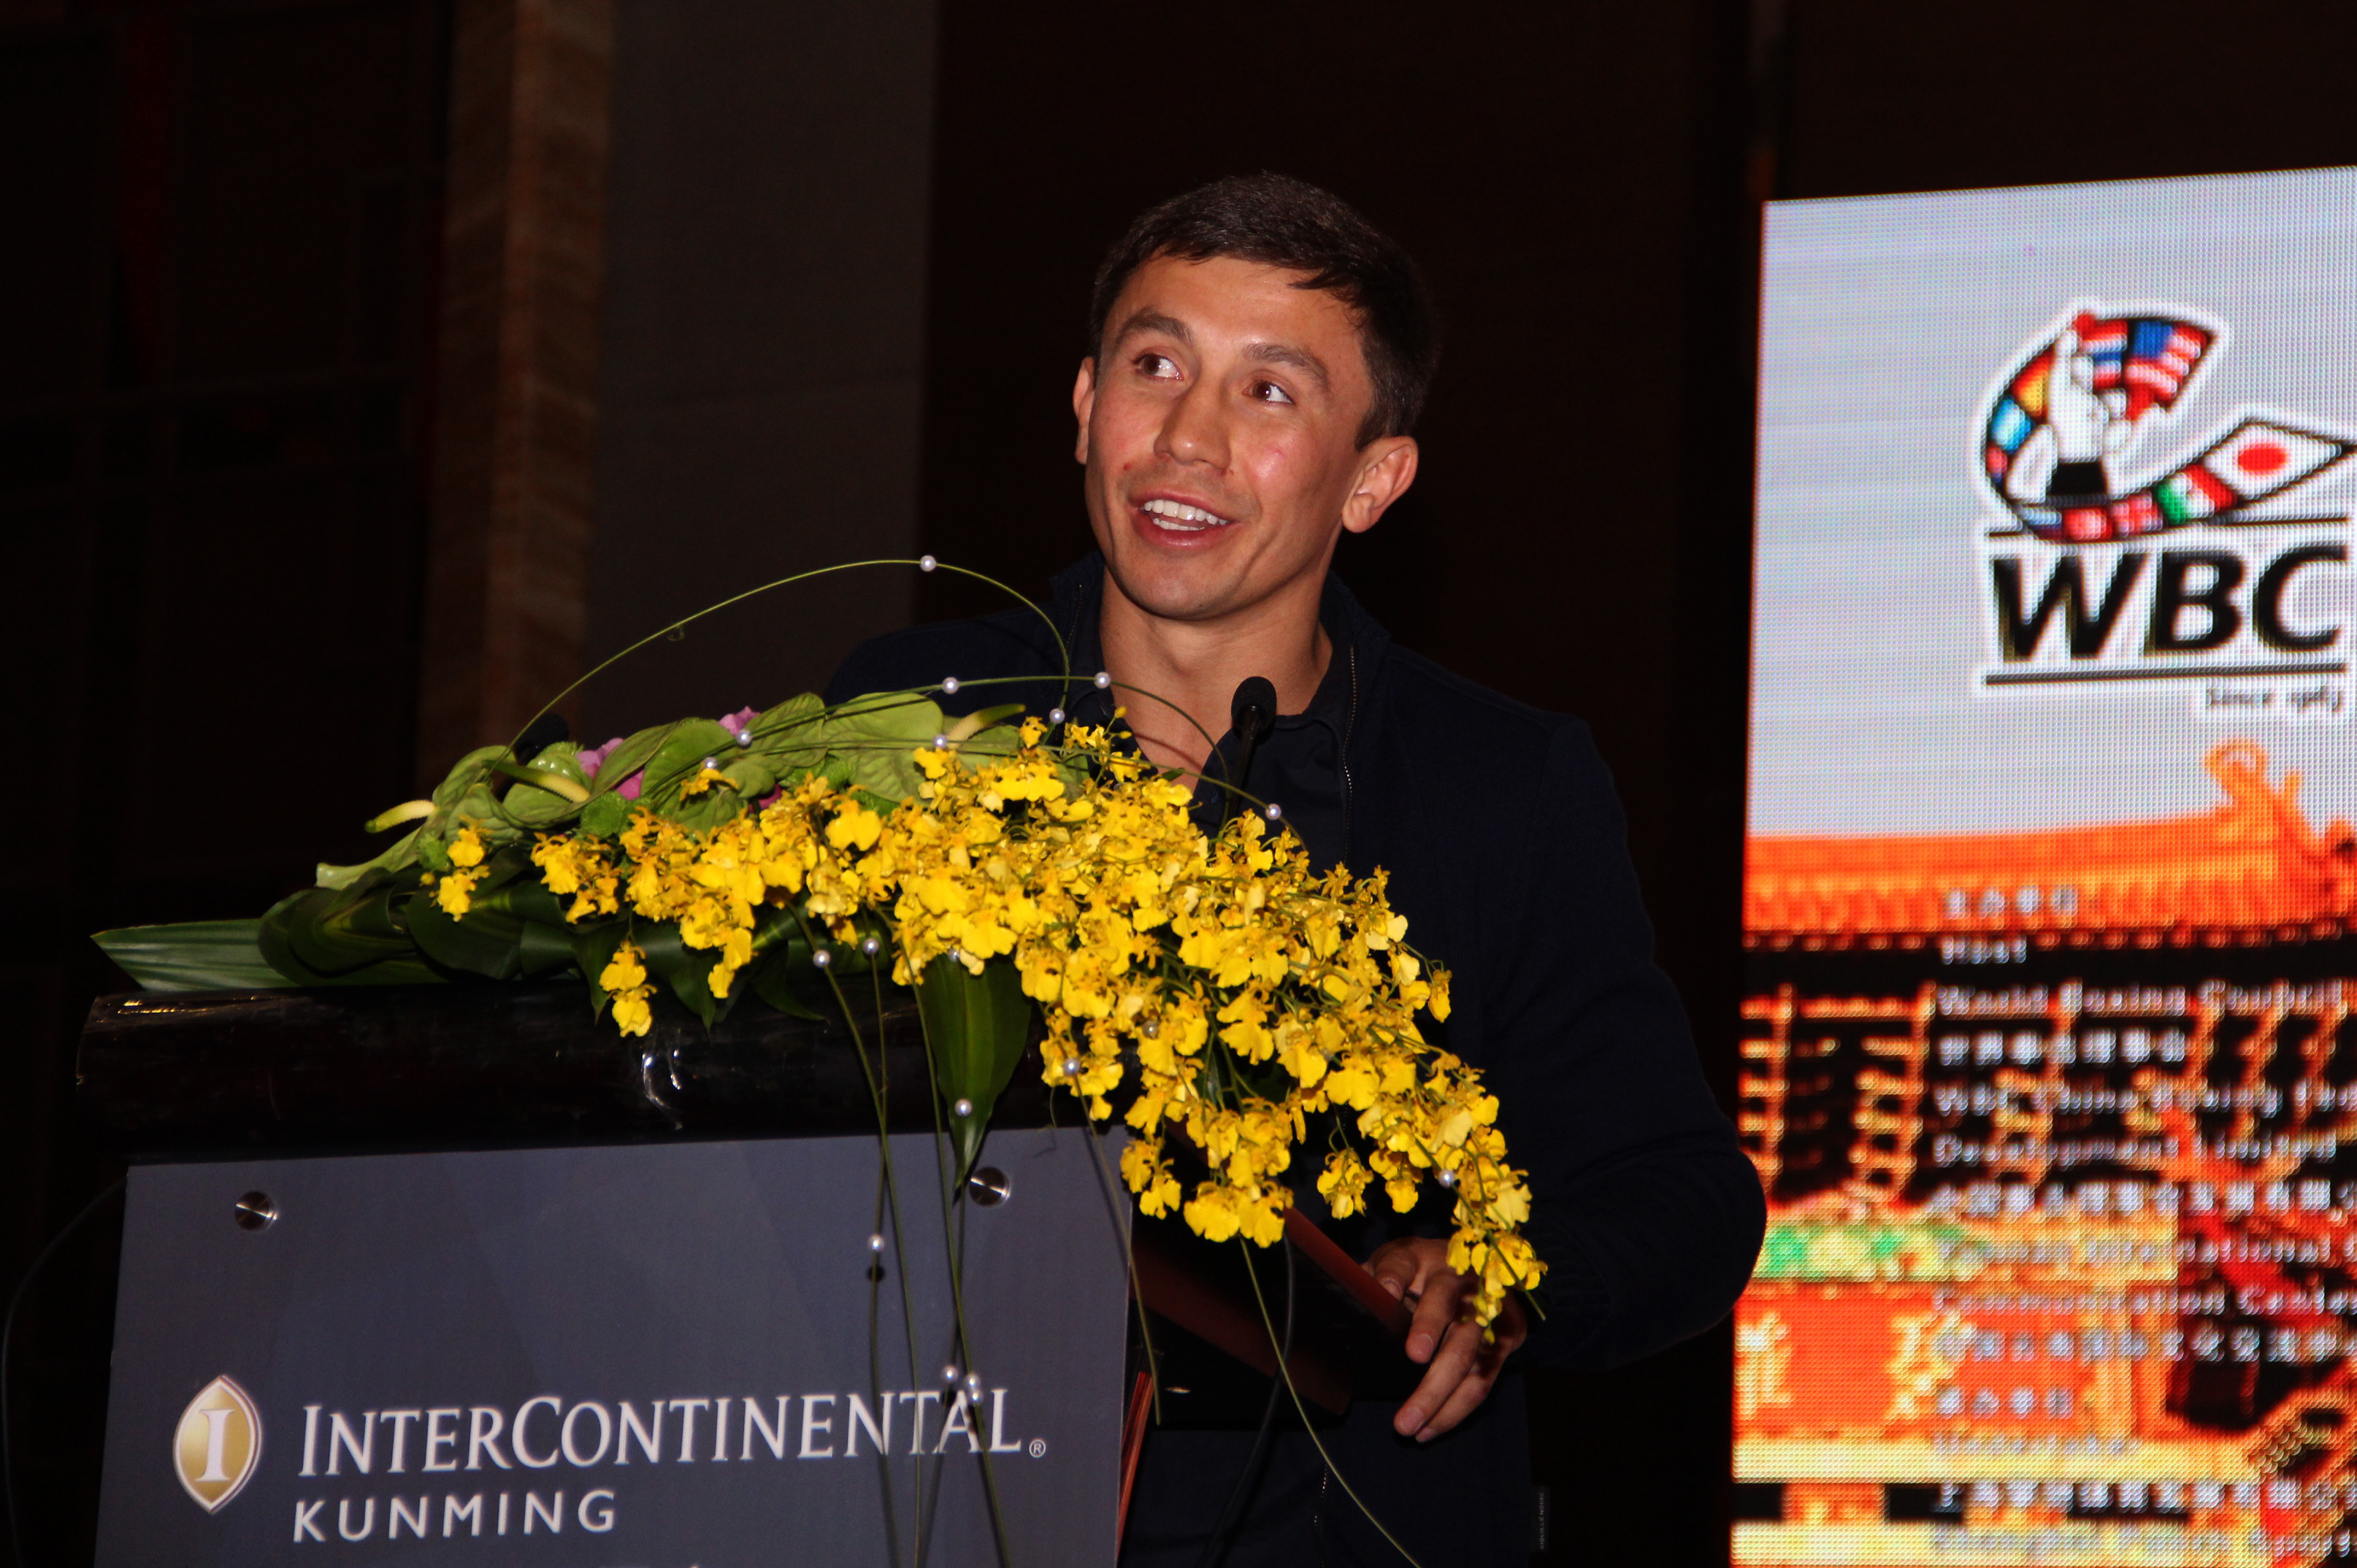 """Gennady Golovkin - (Photo Credits/Sumio Yamada, Supreme Boxing) Kunming, China (November 3, 2015) On Monday at the World Boxing Council's 53rd Annual Convention in Kunming, China, boxing superstar, WBA/IBF/IBO and WBC """"Interim"""" Middleweight World Champion Gennady """"GGG"""" Golovkin, was honored by the sanctioning body in addressing the attendees on behalf of all current and former champions in attendance."""